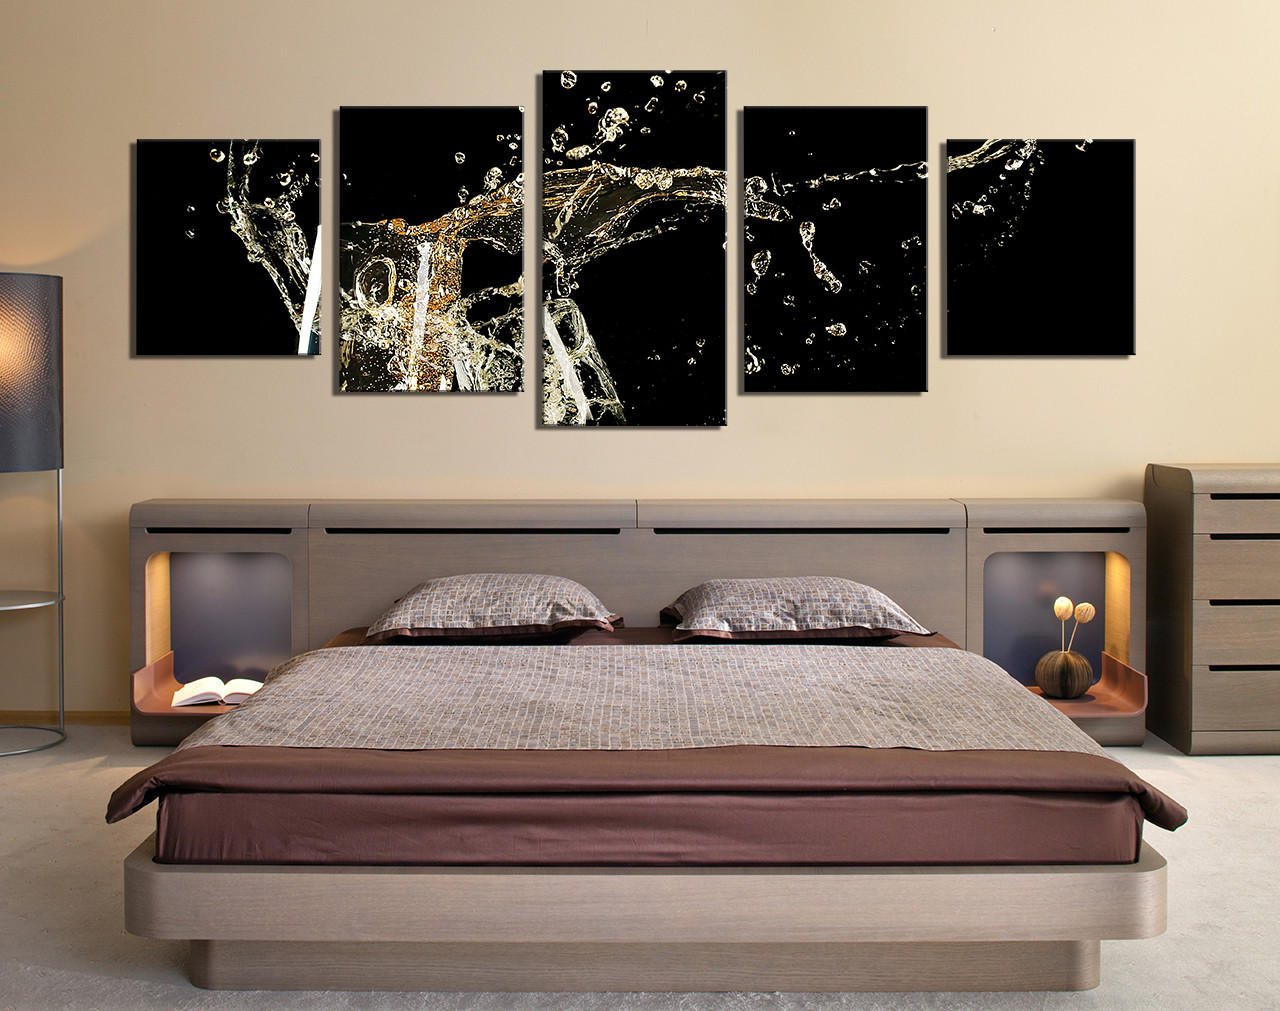 5 Piece Canvas Wall Art, Champagne Multi Panel Canvas, Kitchen Artwork,  Bedroom Wall